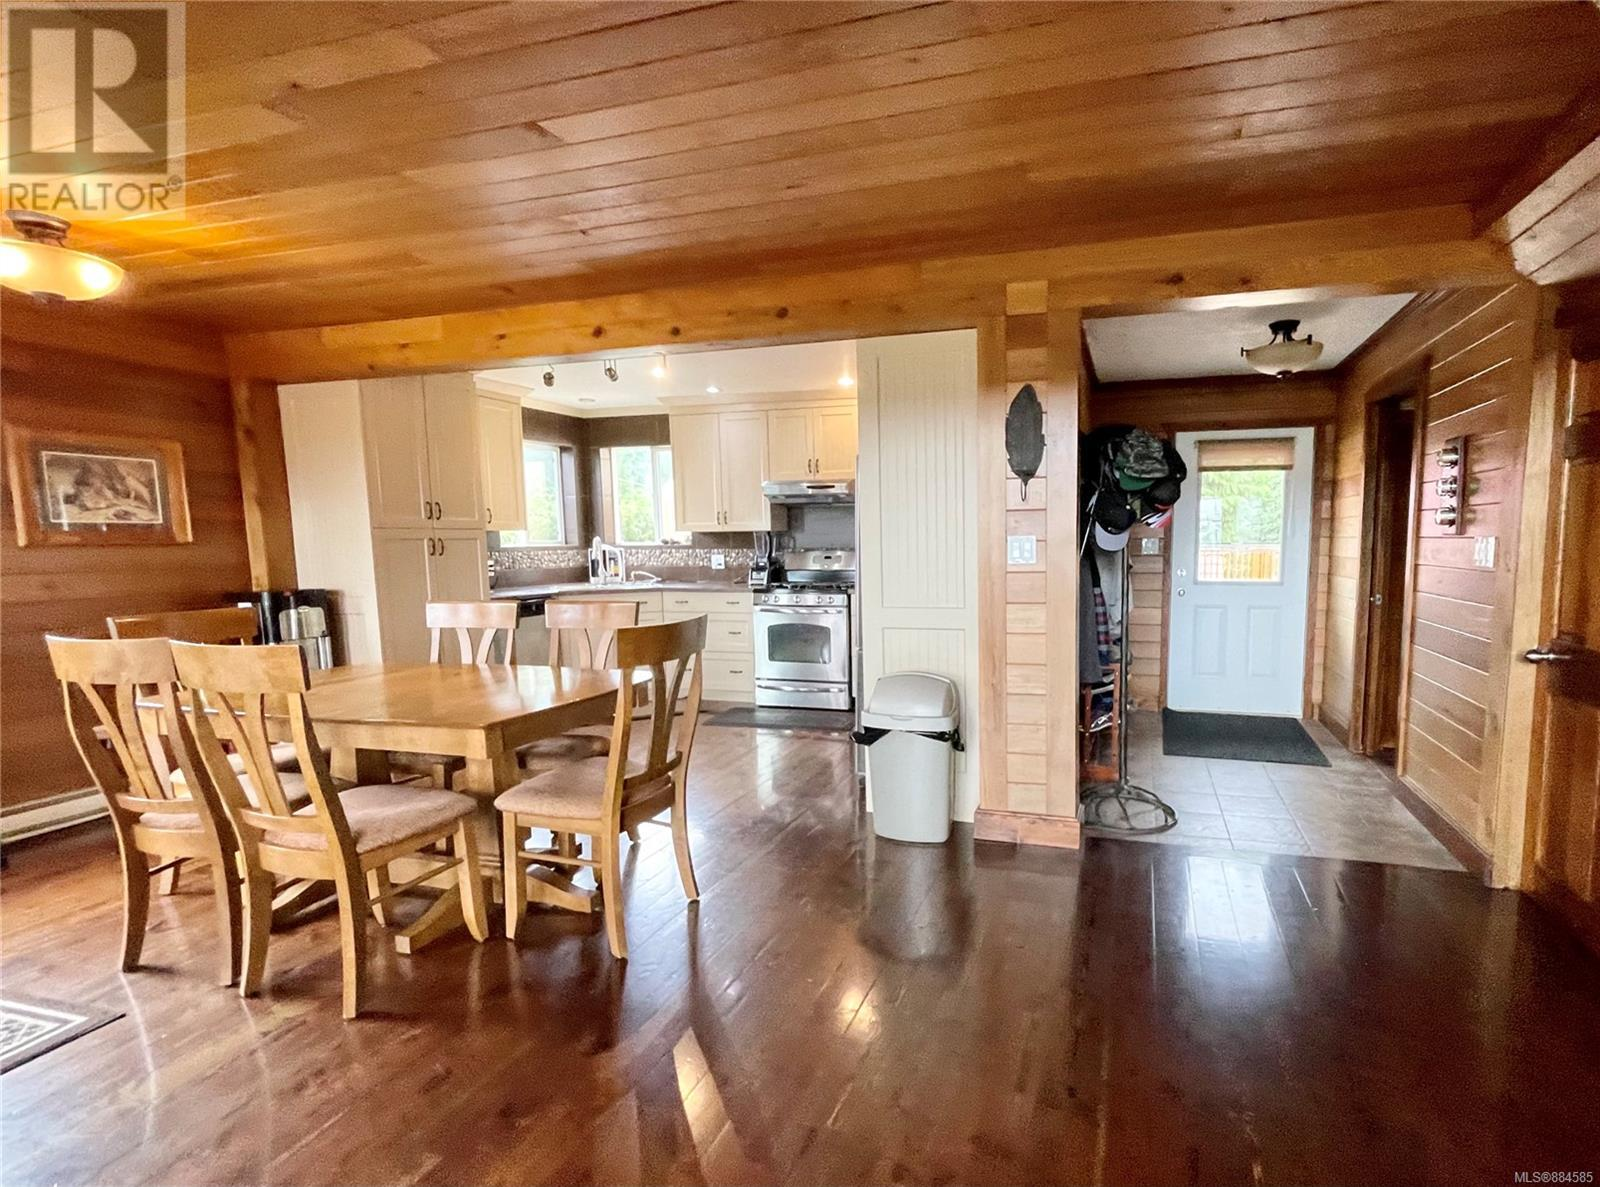 MLS® #884585 - Ucluelet House For sale Image #9